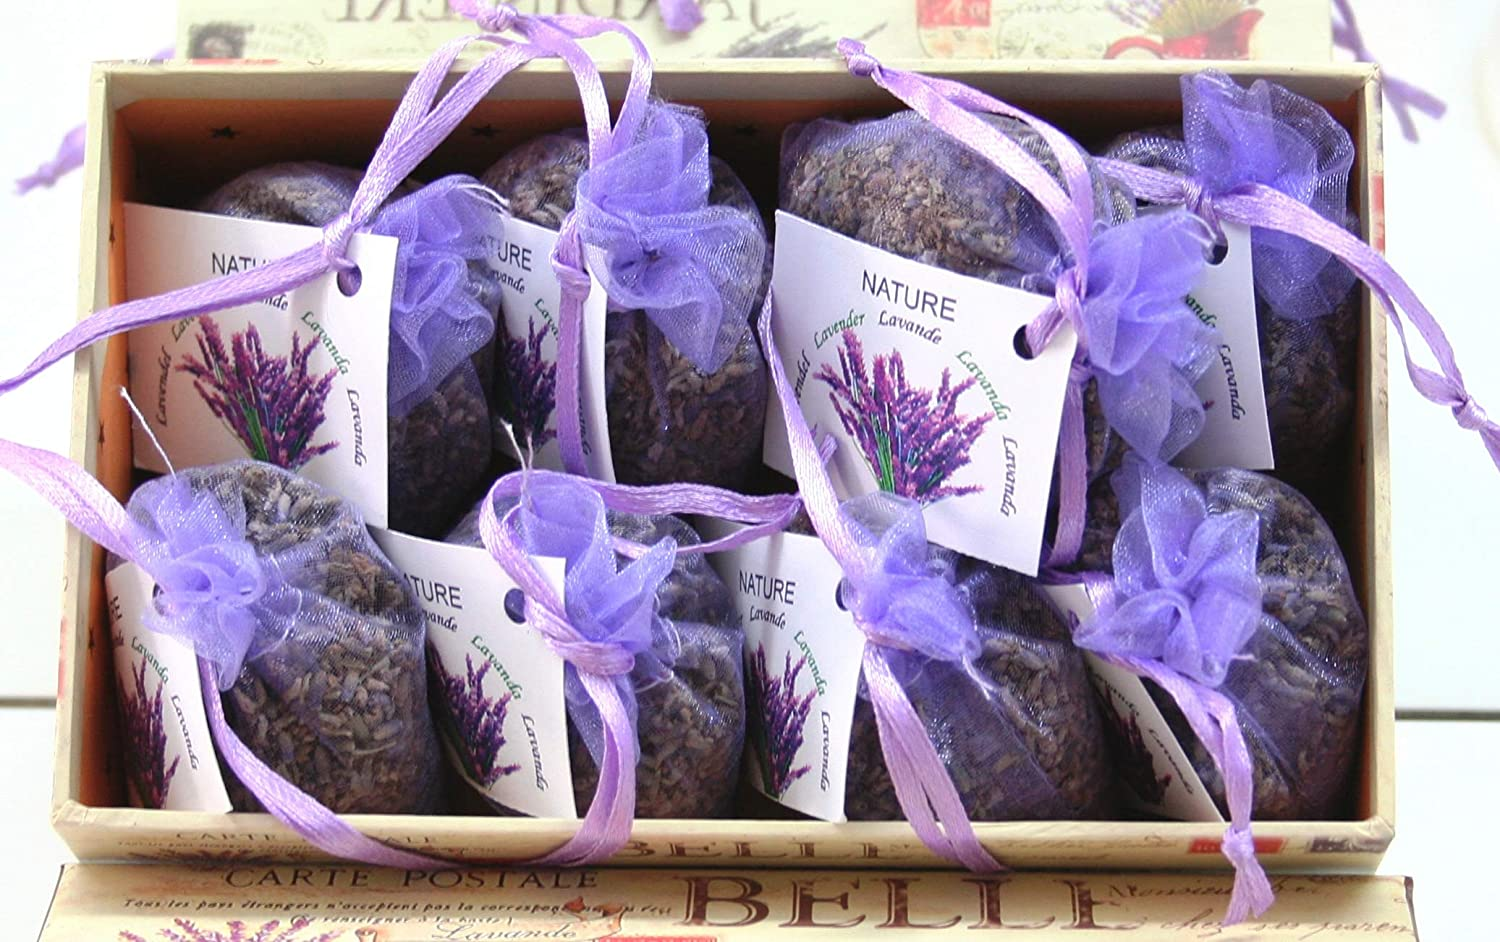 Direct Glogal Lavender Sachets 8 x 10 grams + Decorative Box. Great house decoration. Lavender bags are great aromatherapy a natural moth repellent. Excelent gift! Direct Global